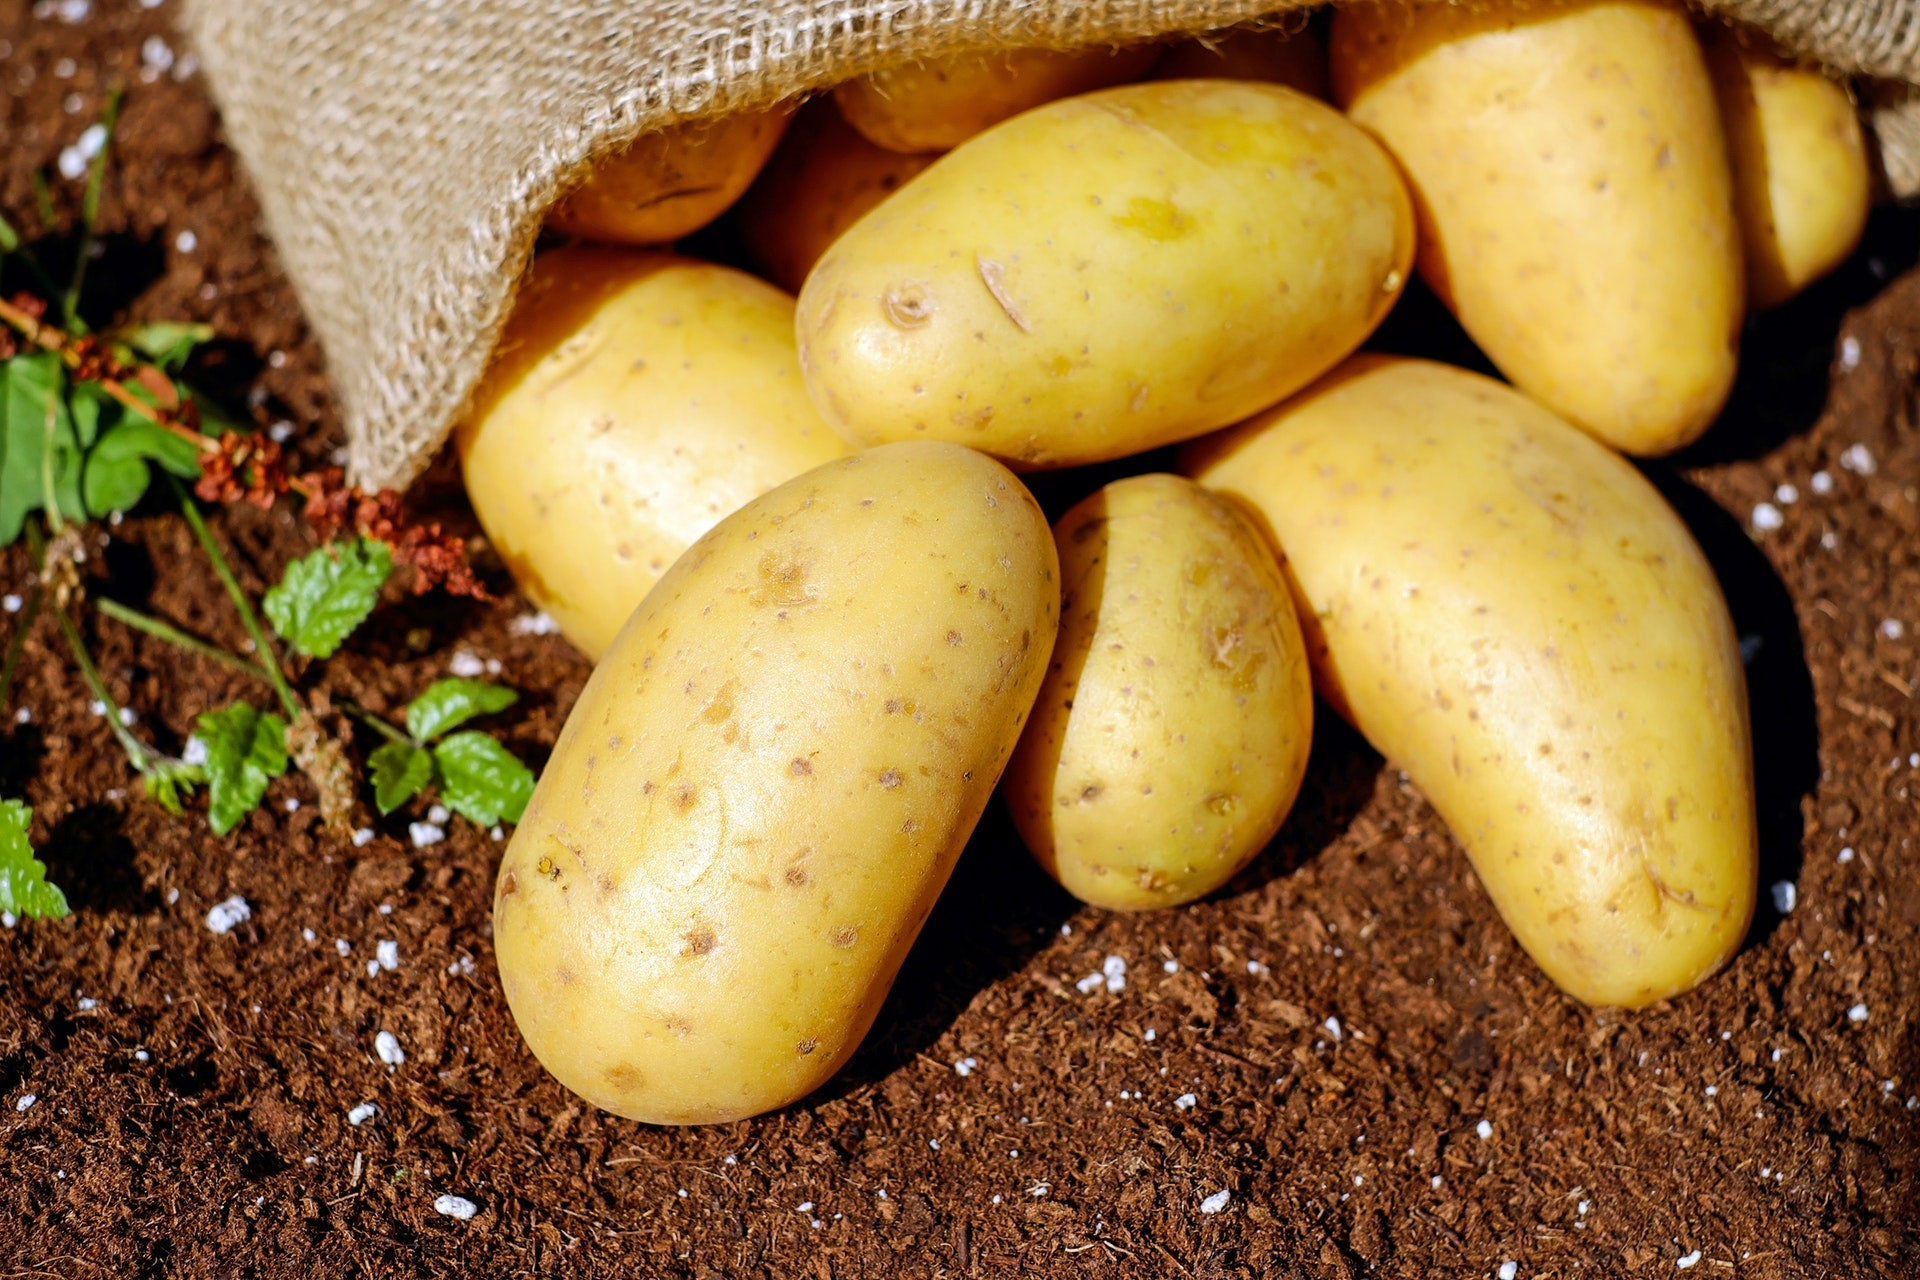 Potatoes - The Farm Shop Toowoomba